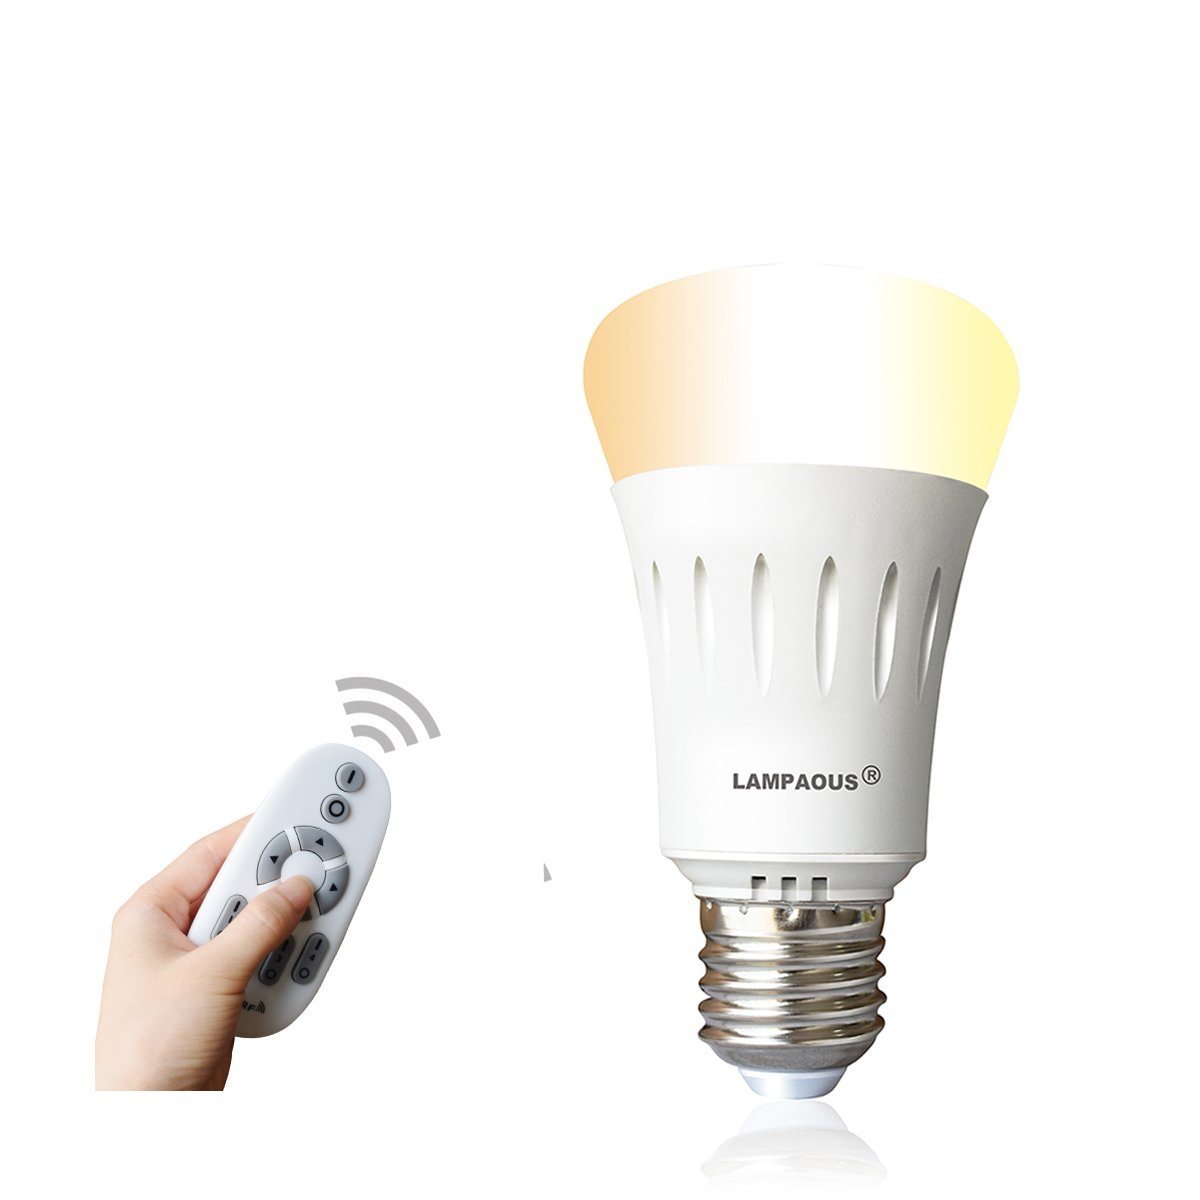 LAMPAOUS Remote Control LED Light Bulbs,Color Temperature Adjustable Dim to Bright 60 Watt Incandescent Equivalent for Desk Lamp Table Lamp Beside Lamp Ceiling Pendant Lamp (Smart Bulb and Control)